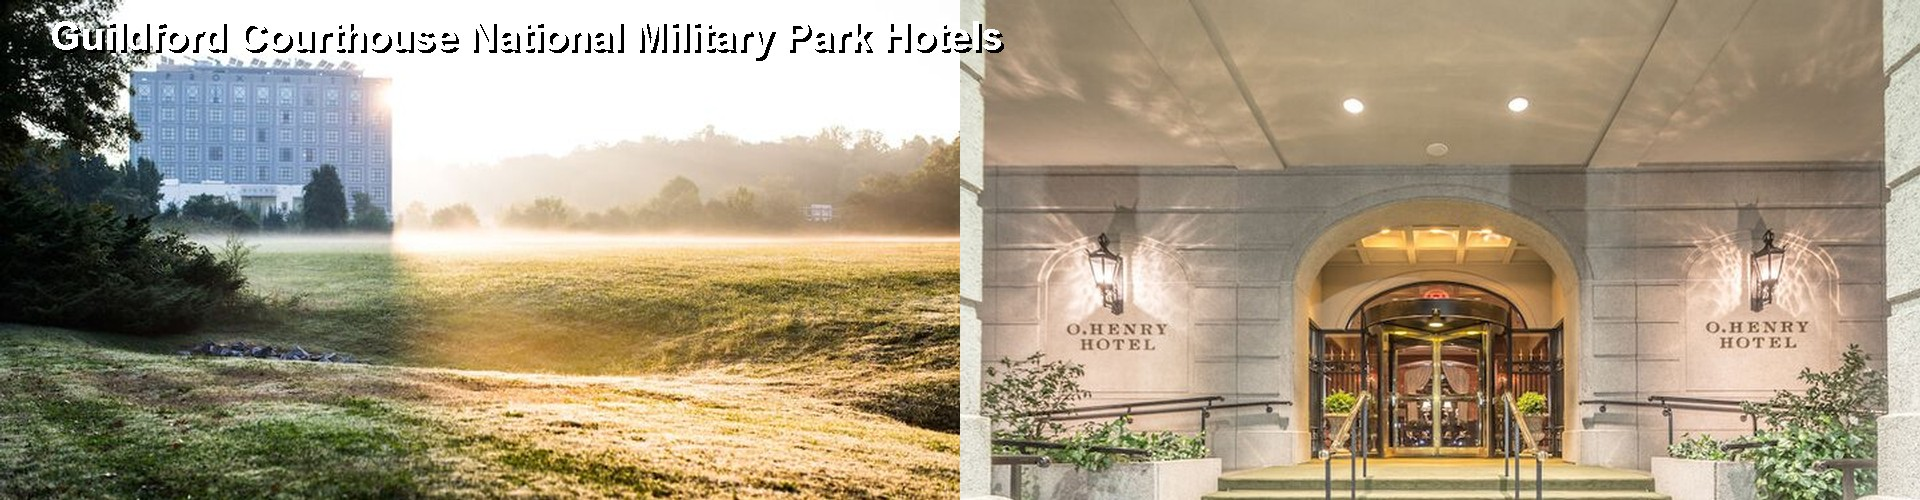 5 Best Hotels near Guildford Courthouse National Military Park